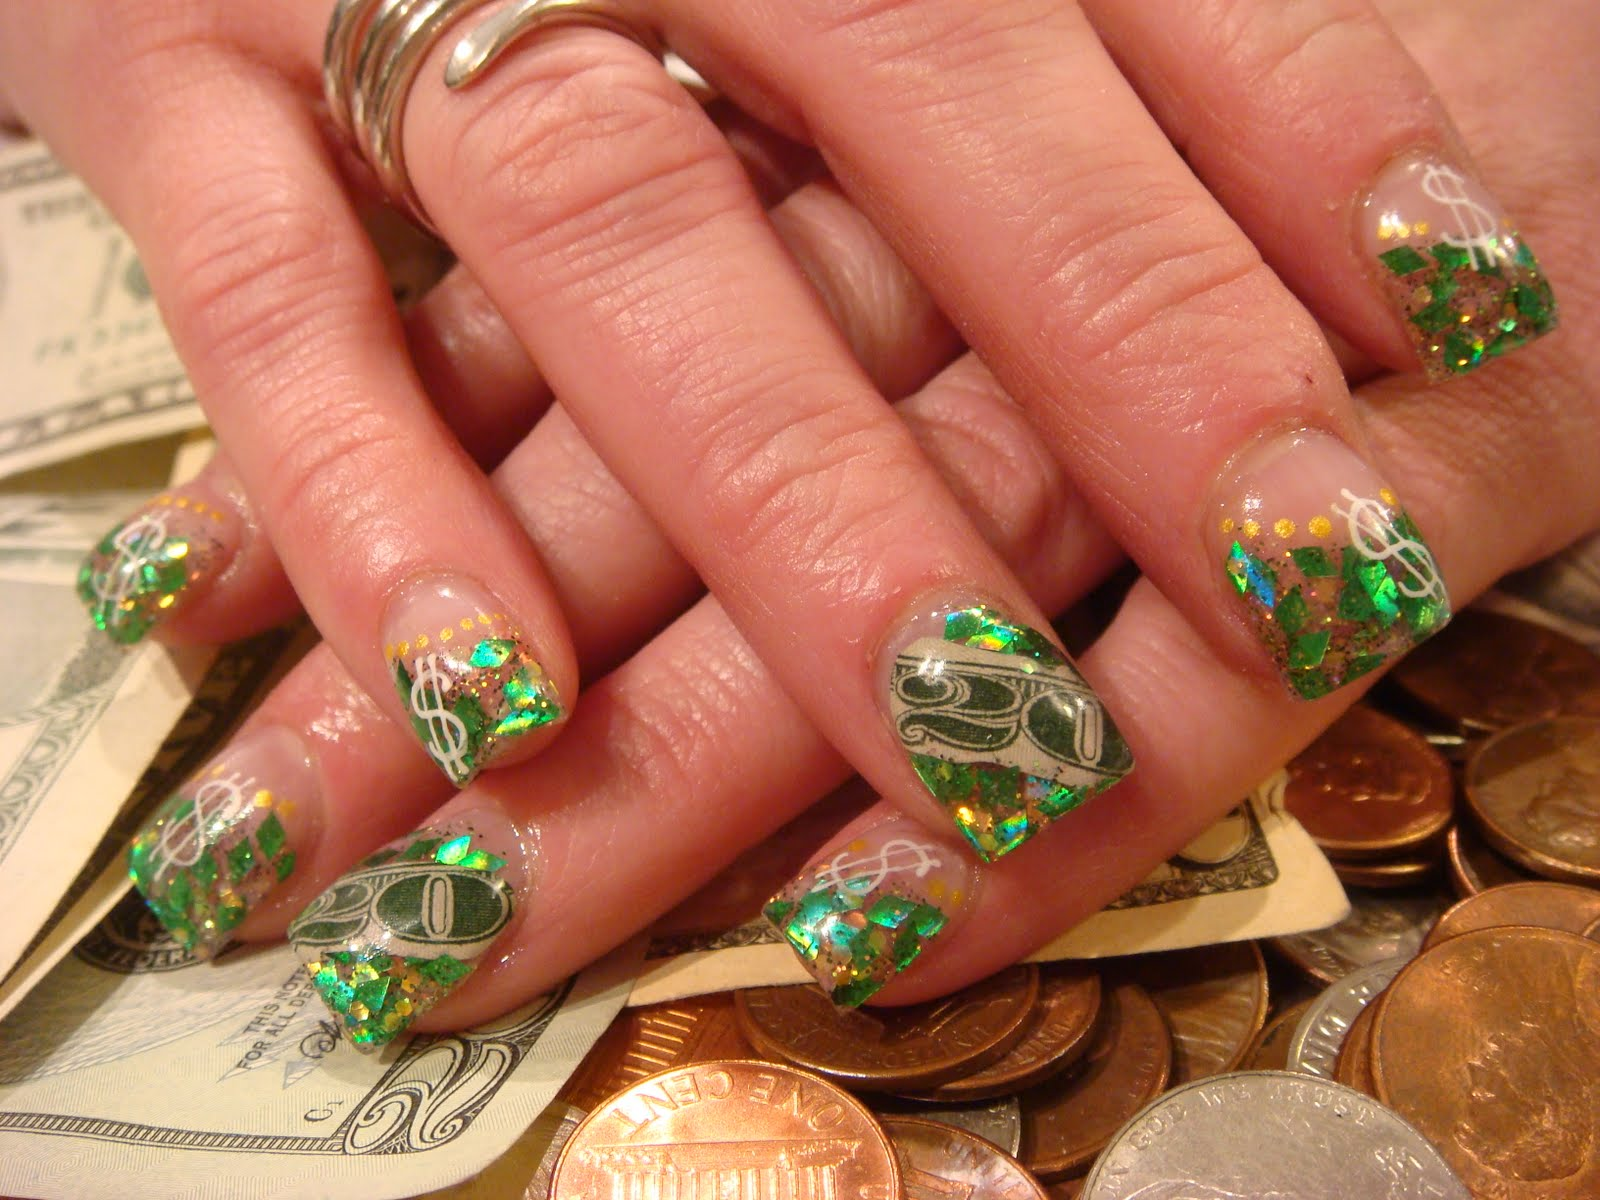 Nail Art: MONEY MONEY MONEY